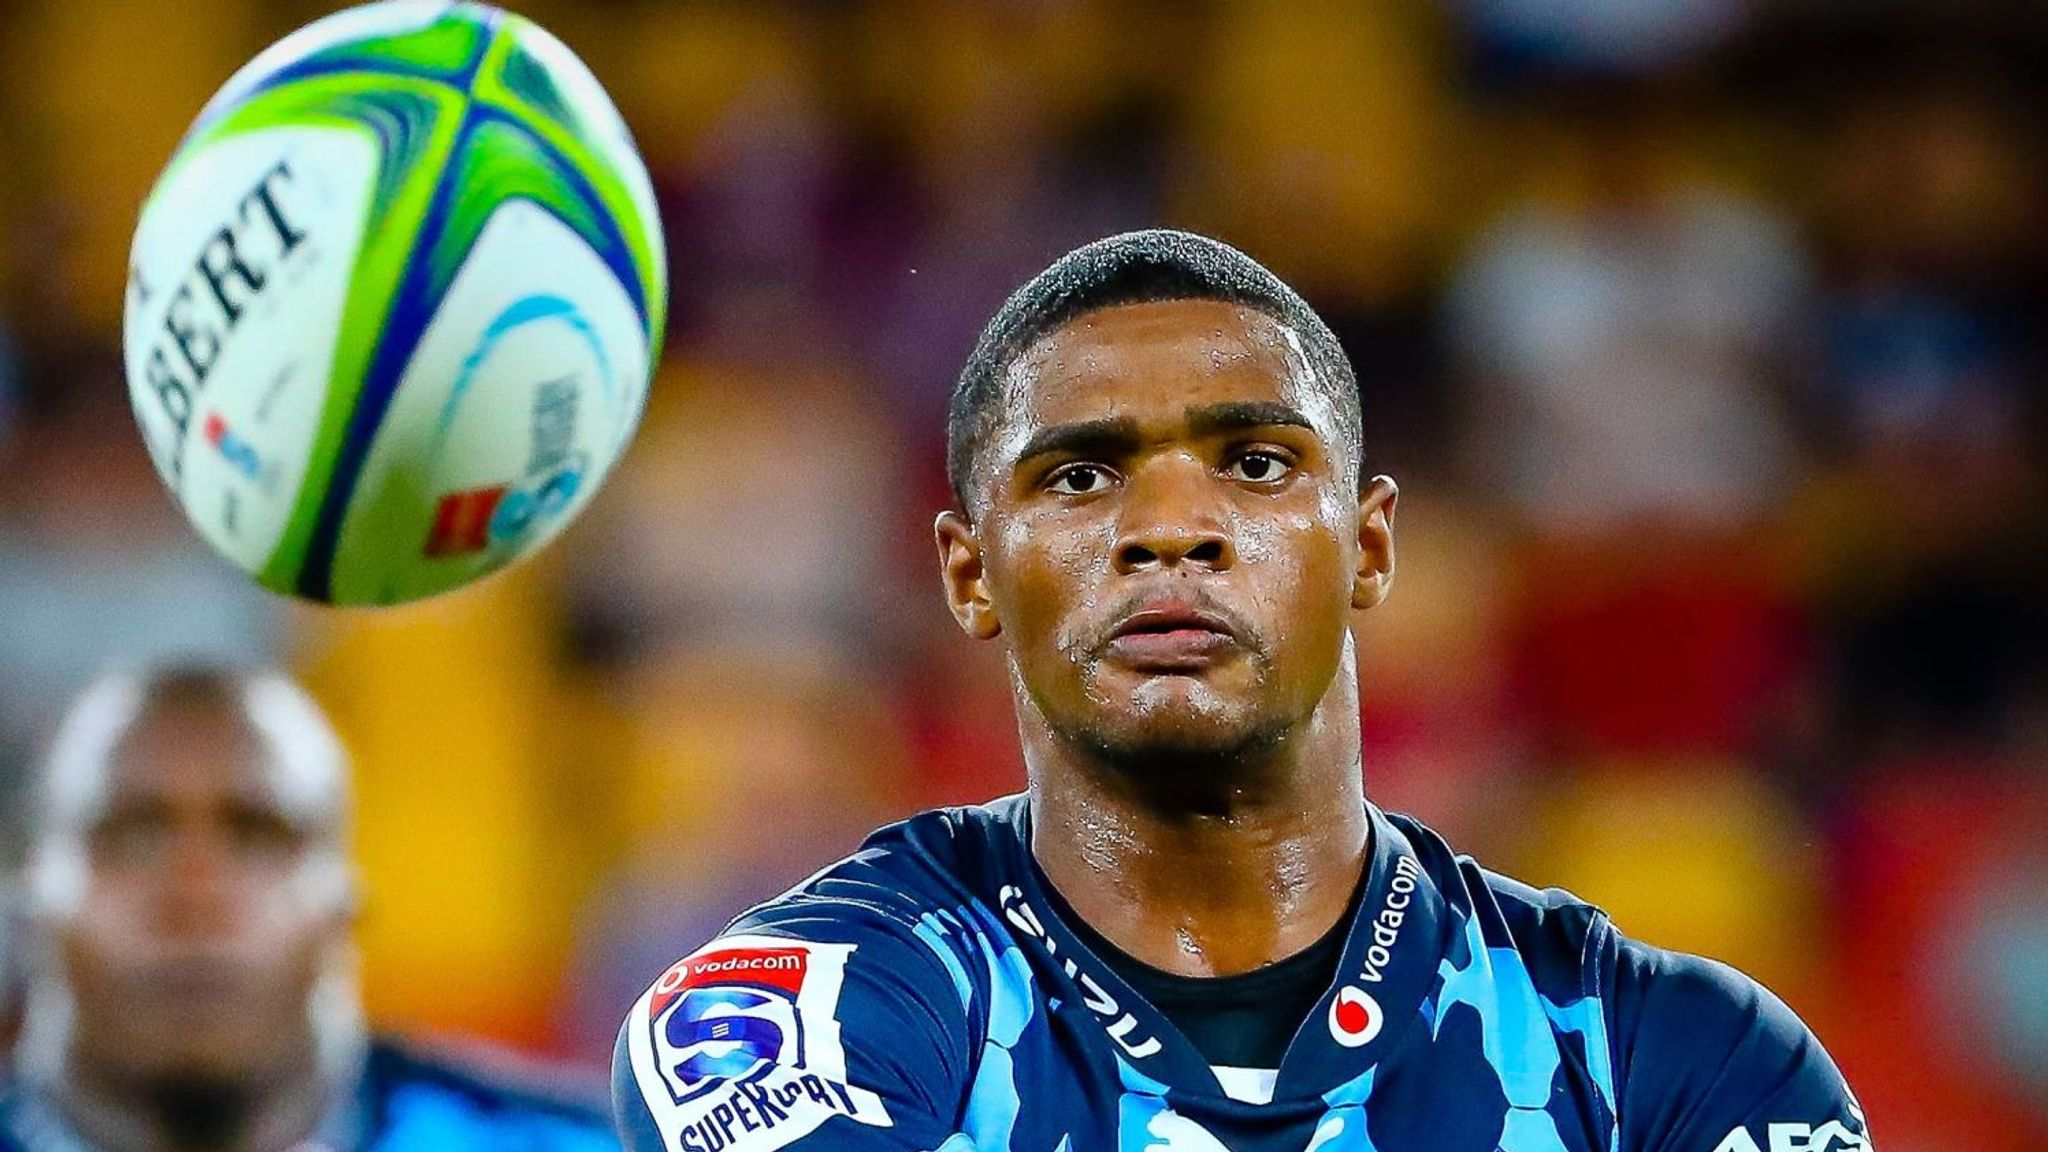 Fullback Warrick Gelant sign with Western Province Rugby - Sports Leo